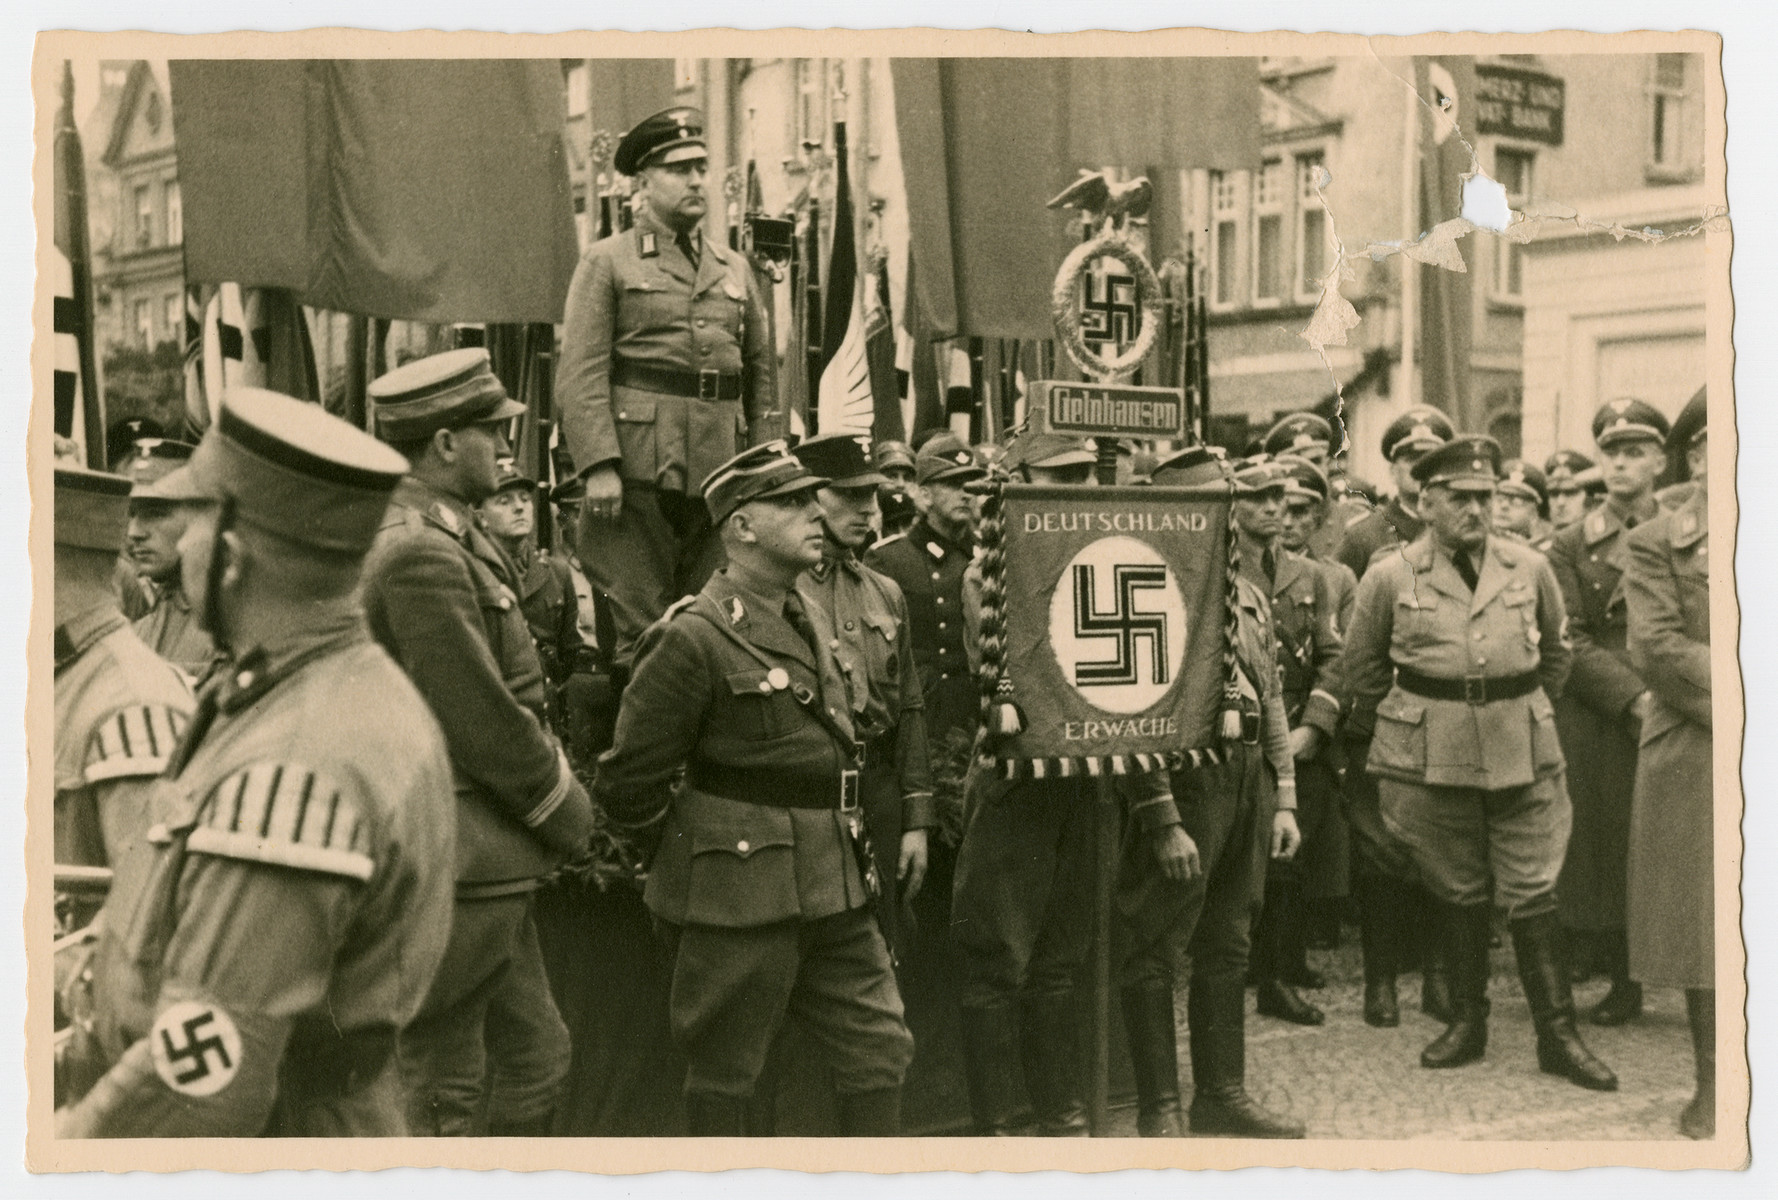 Nazis carrying a  Germany Awake banner gather at a May Day Nazi party parade in Fulda.